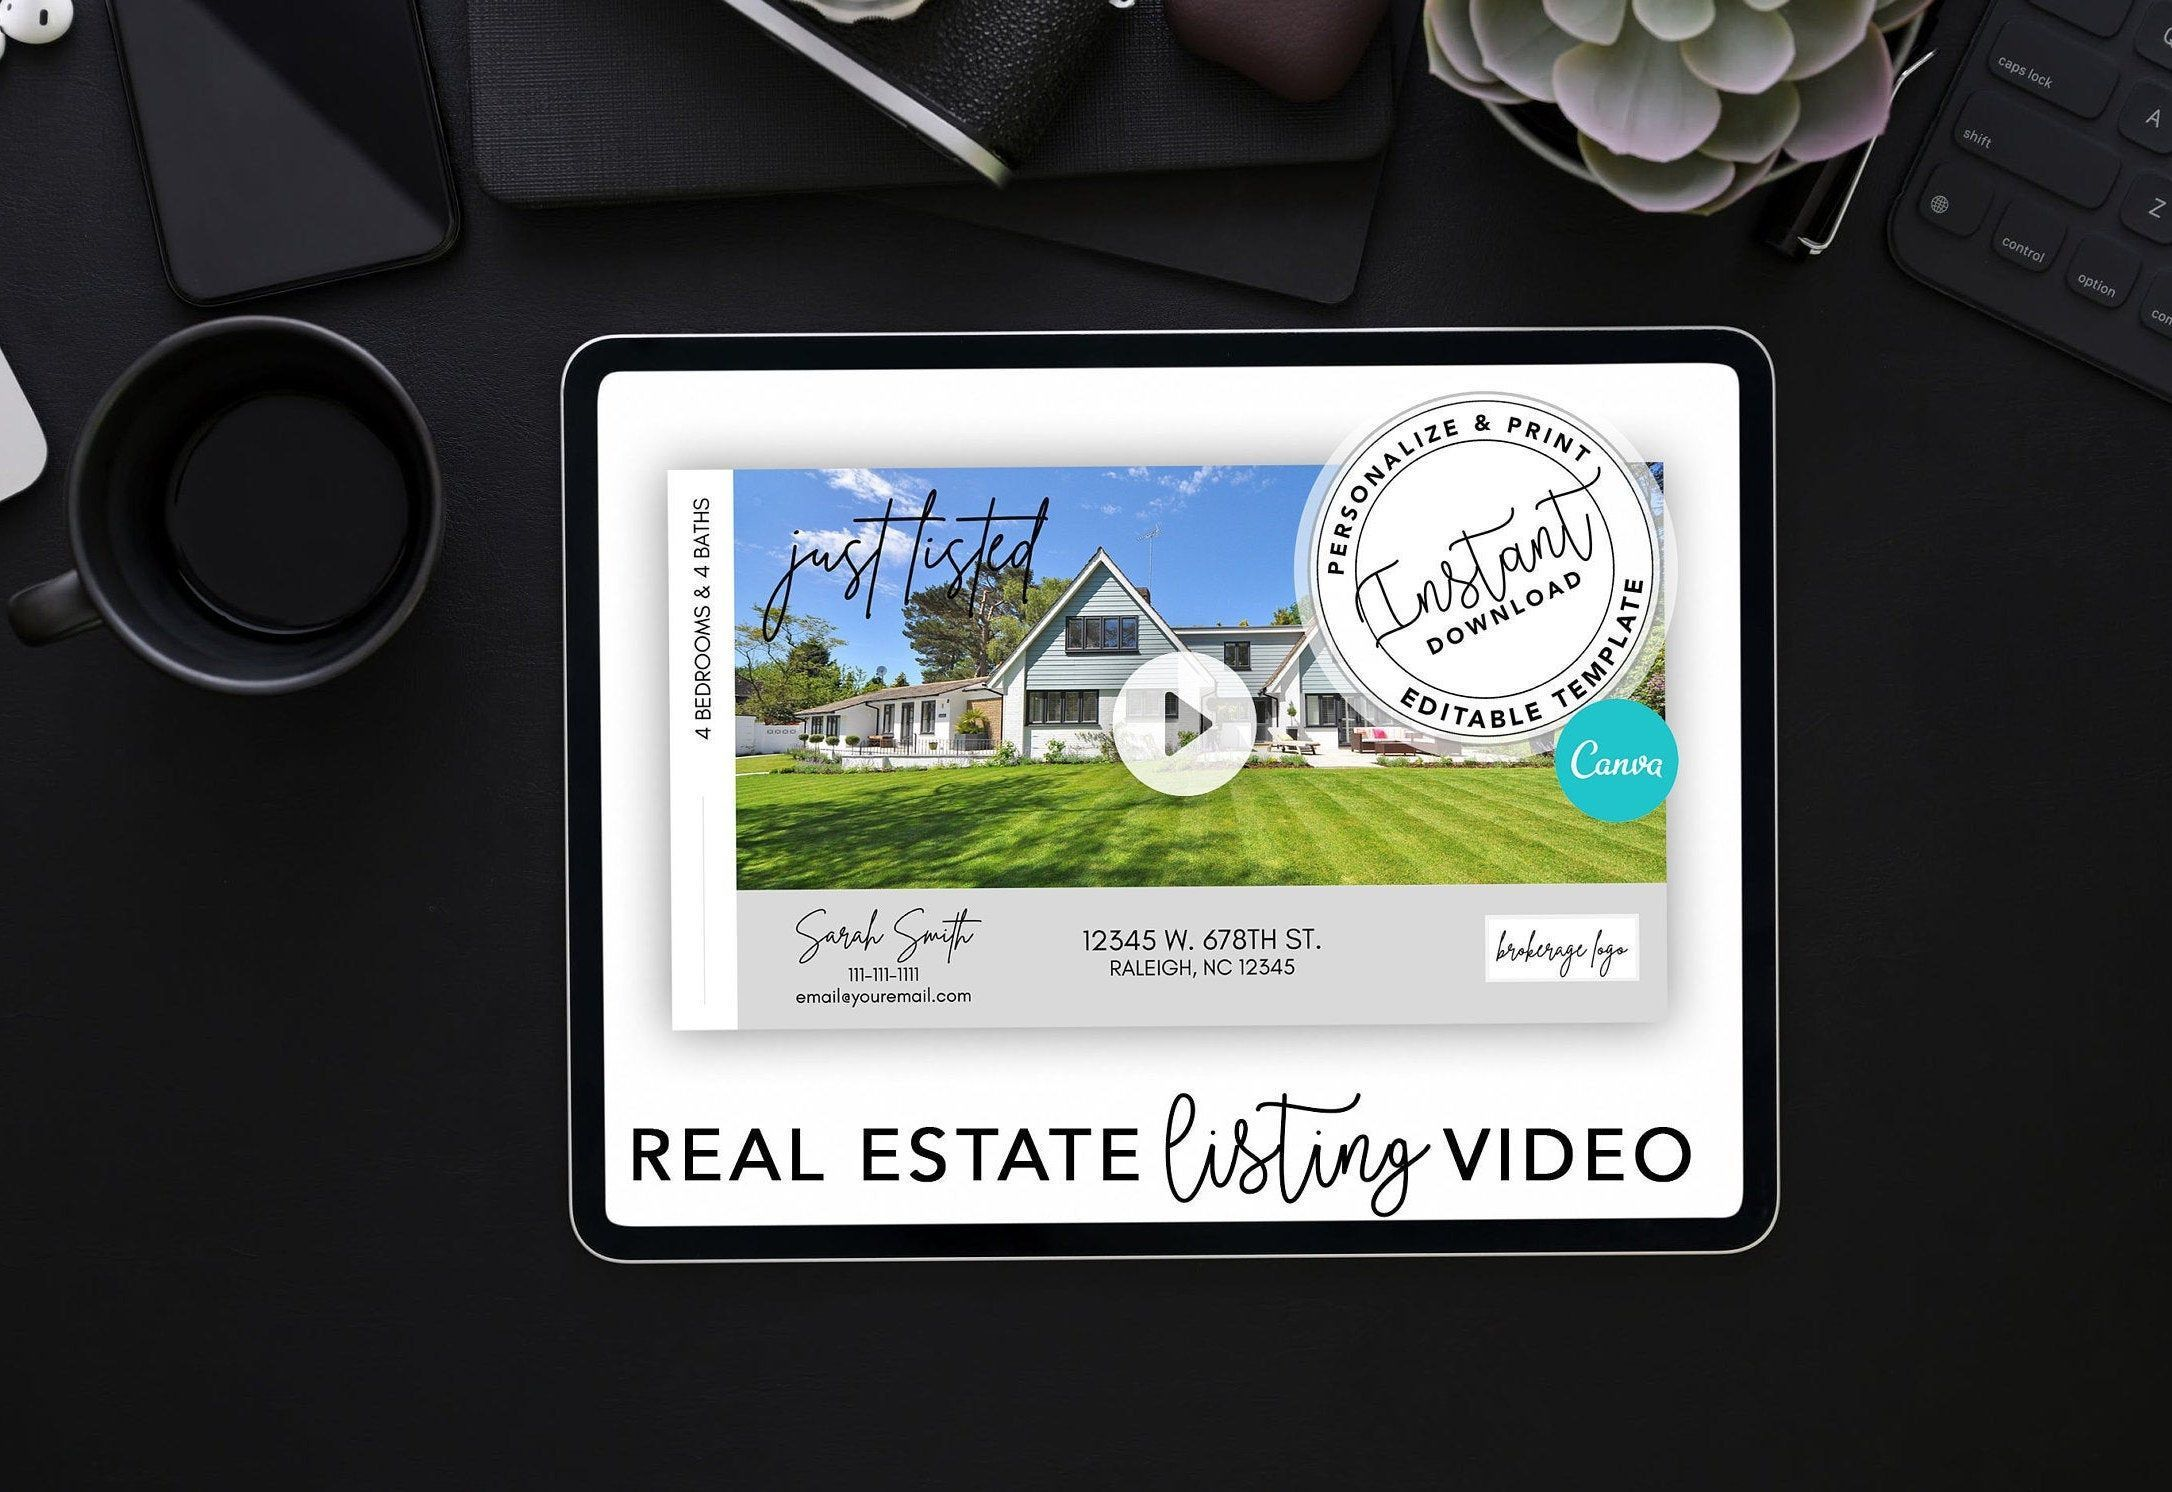 000 Stunning Real Estate Marketing Video Template High Definition  TemplatesFull